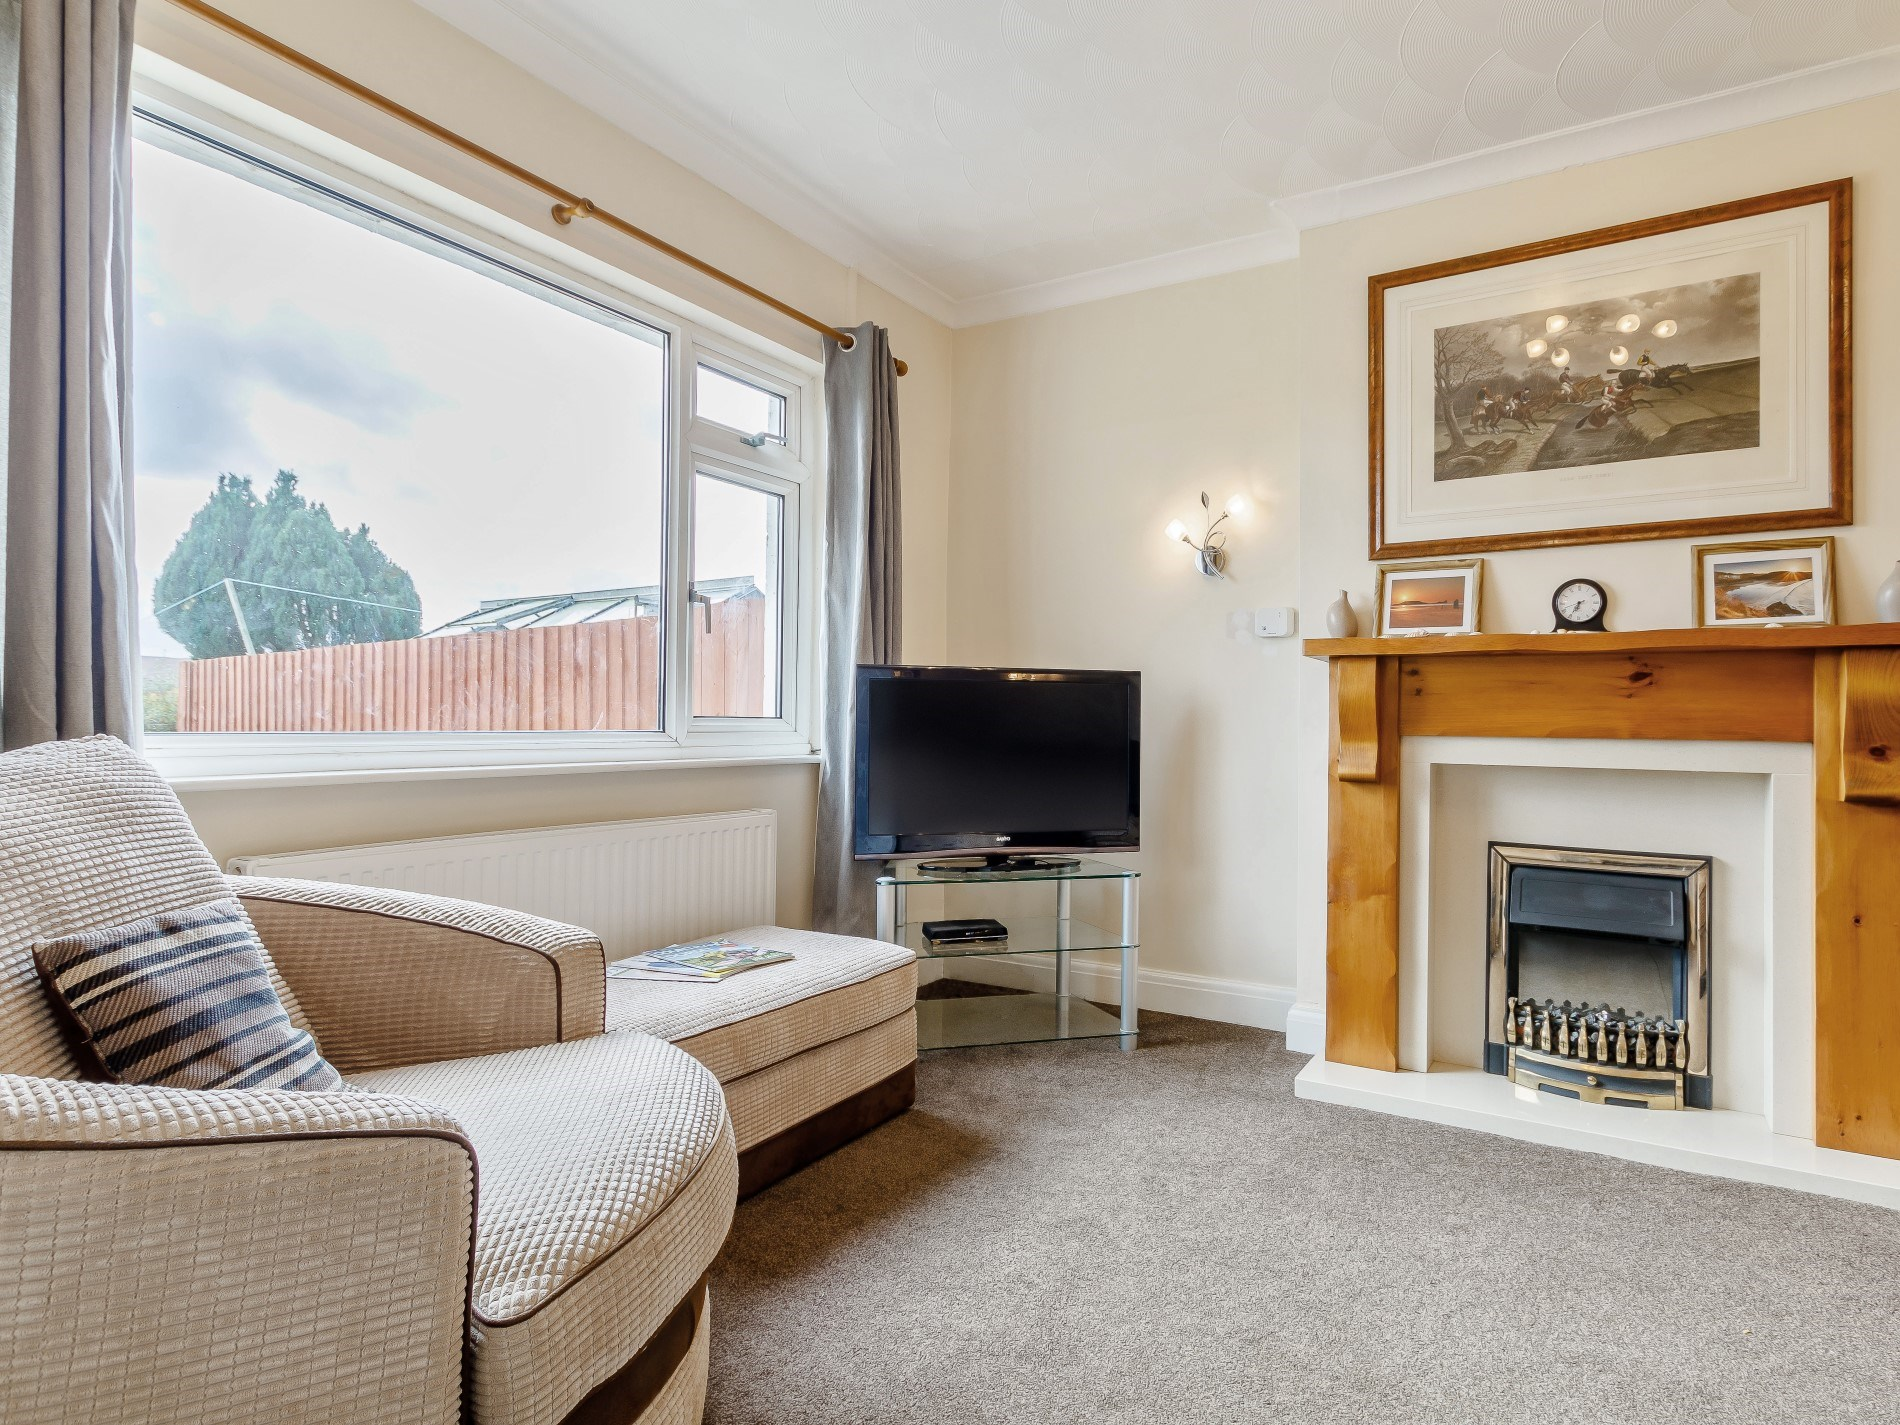 4 Bedroom Cottage in Swansea, Pembrokeshire and the South